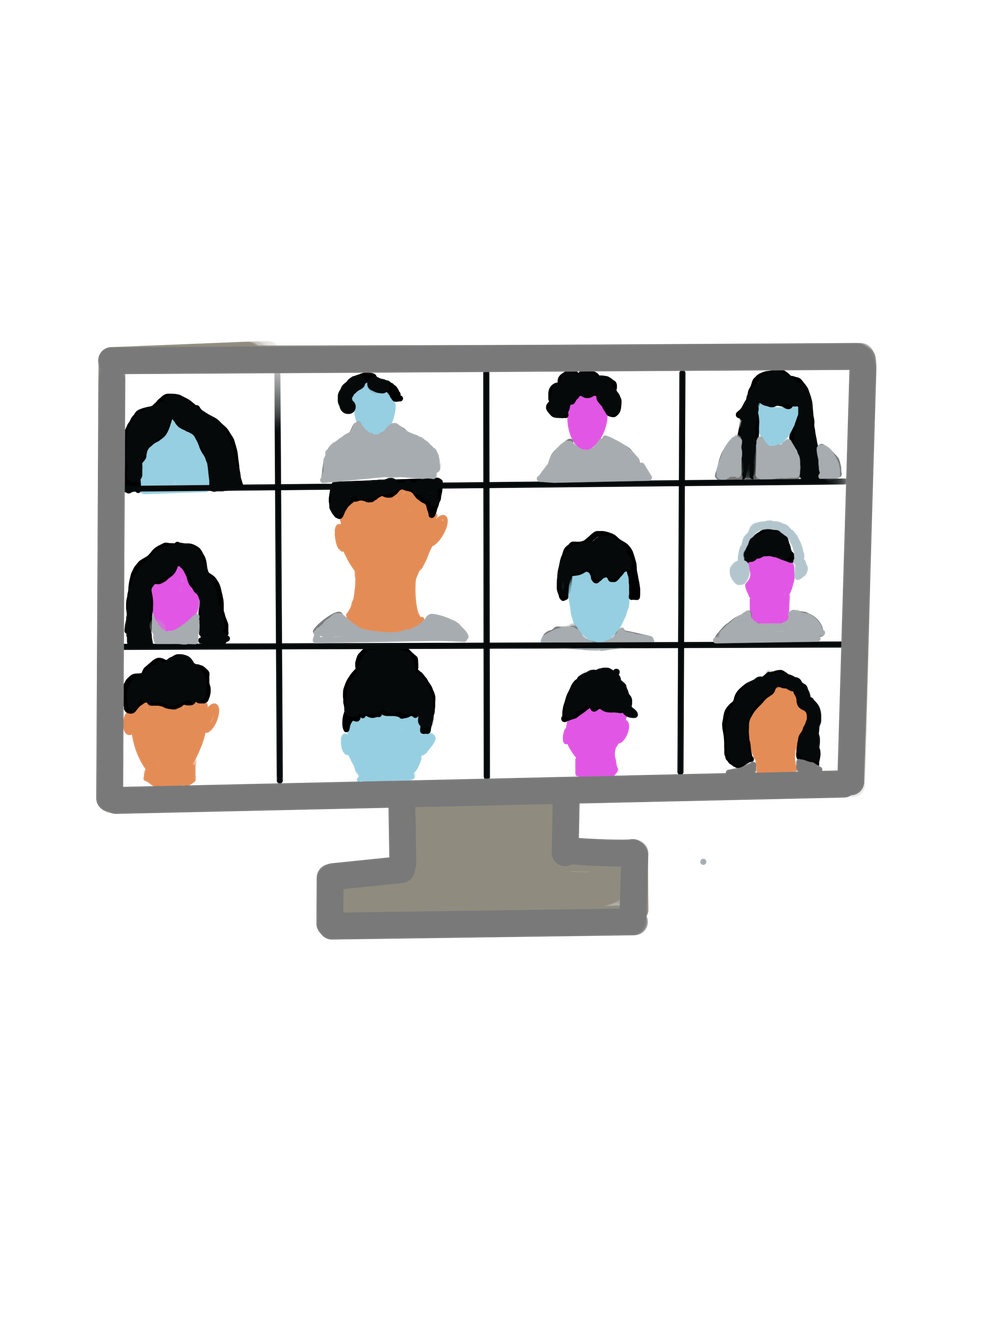 Illustration of a video classroom with orange, blue and pink faces fill the twelve squares.